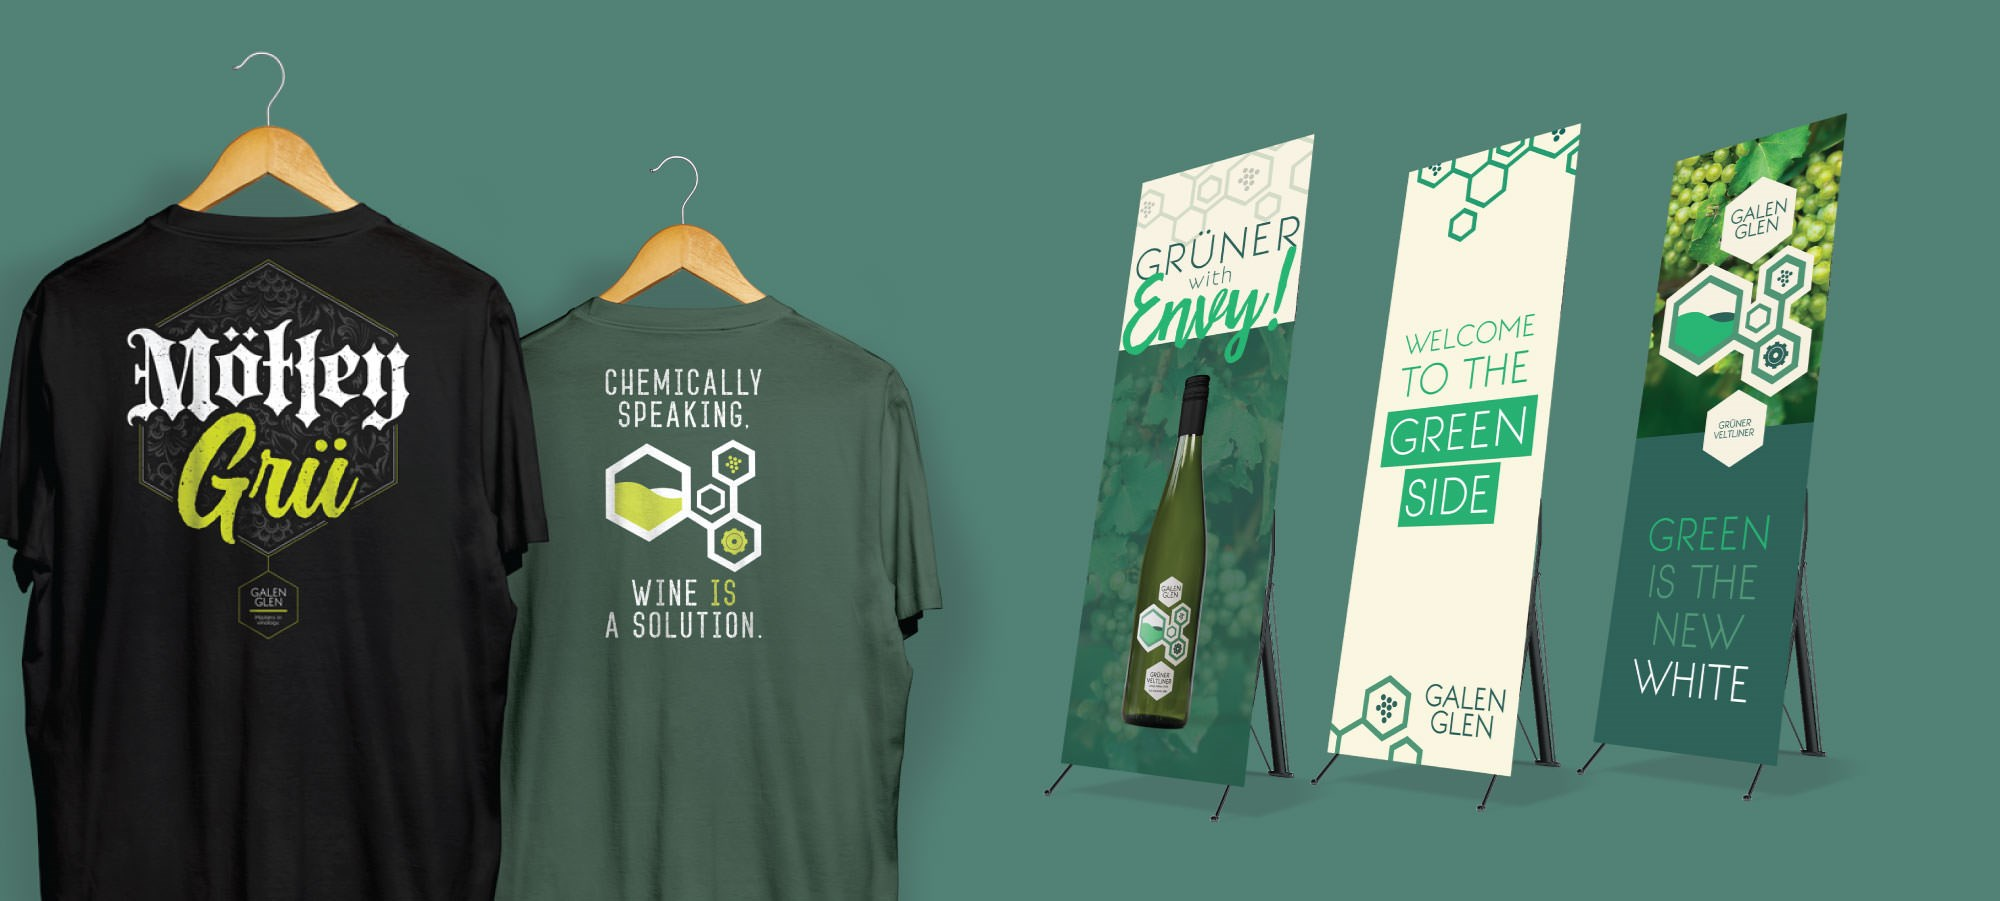 Galen Glen T-shirts and Banners